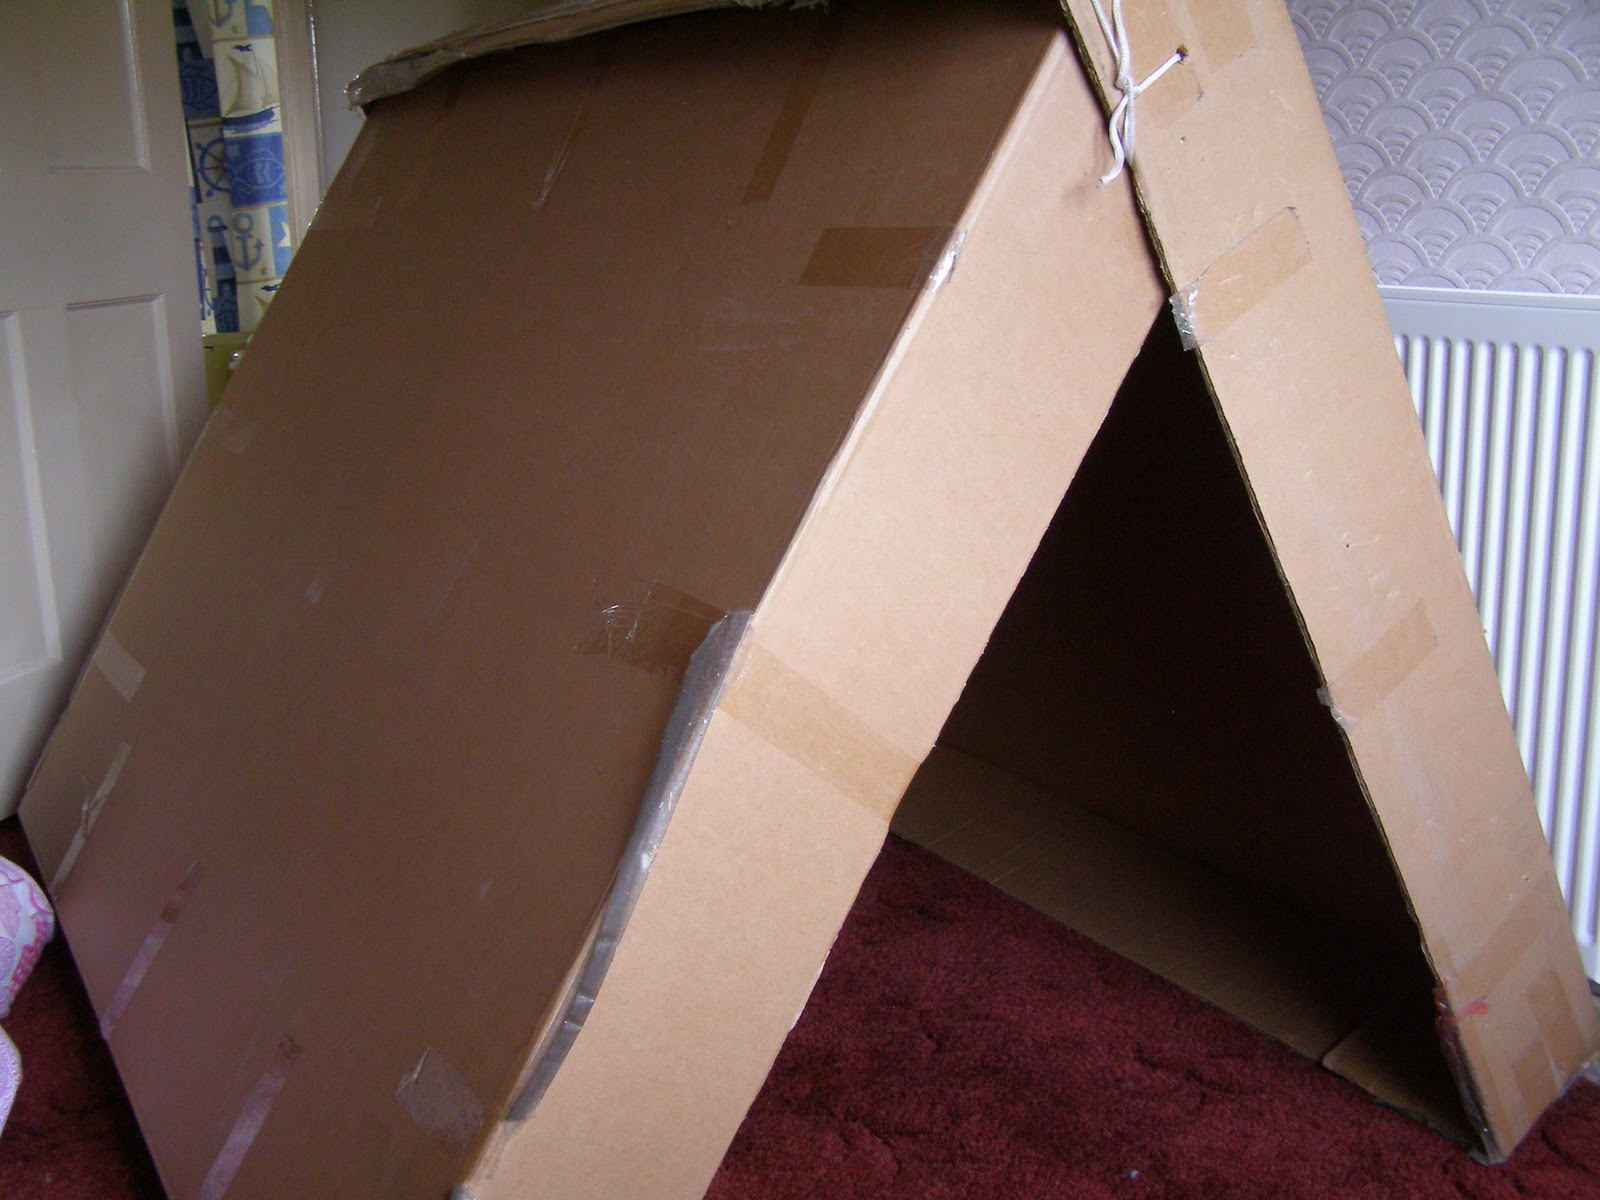 Creativity with Cardboard Boxes Tent and Indoor C&ing & Create with your hands: Creativity with Cardboard Boxes: Tent and ...